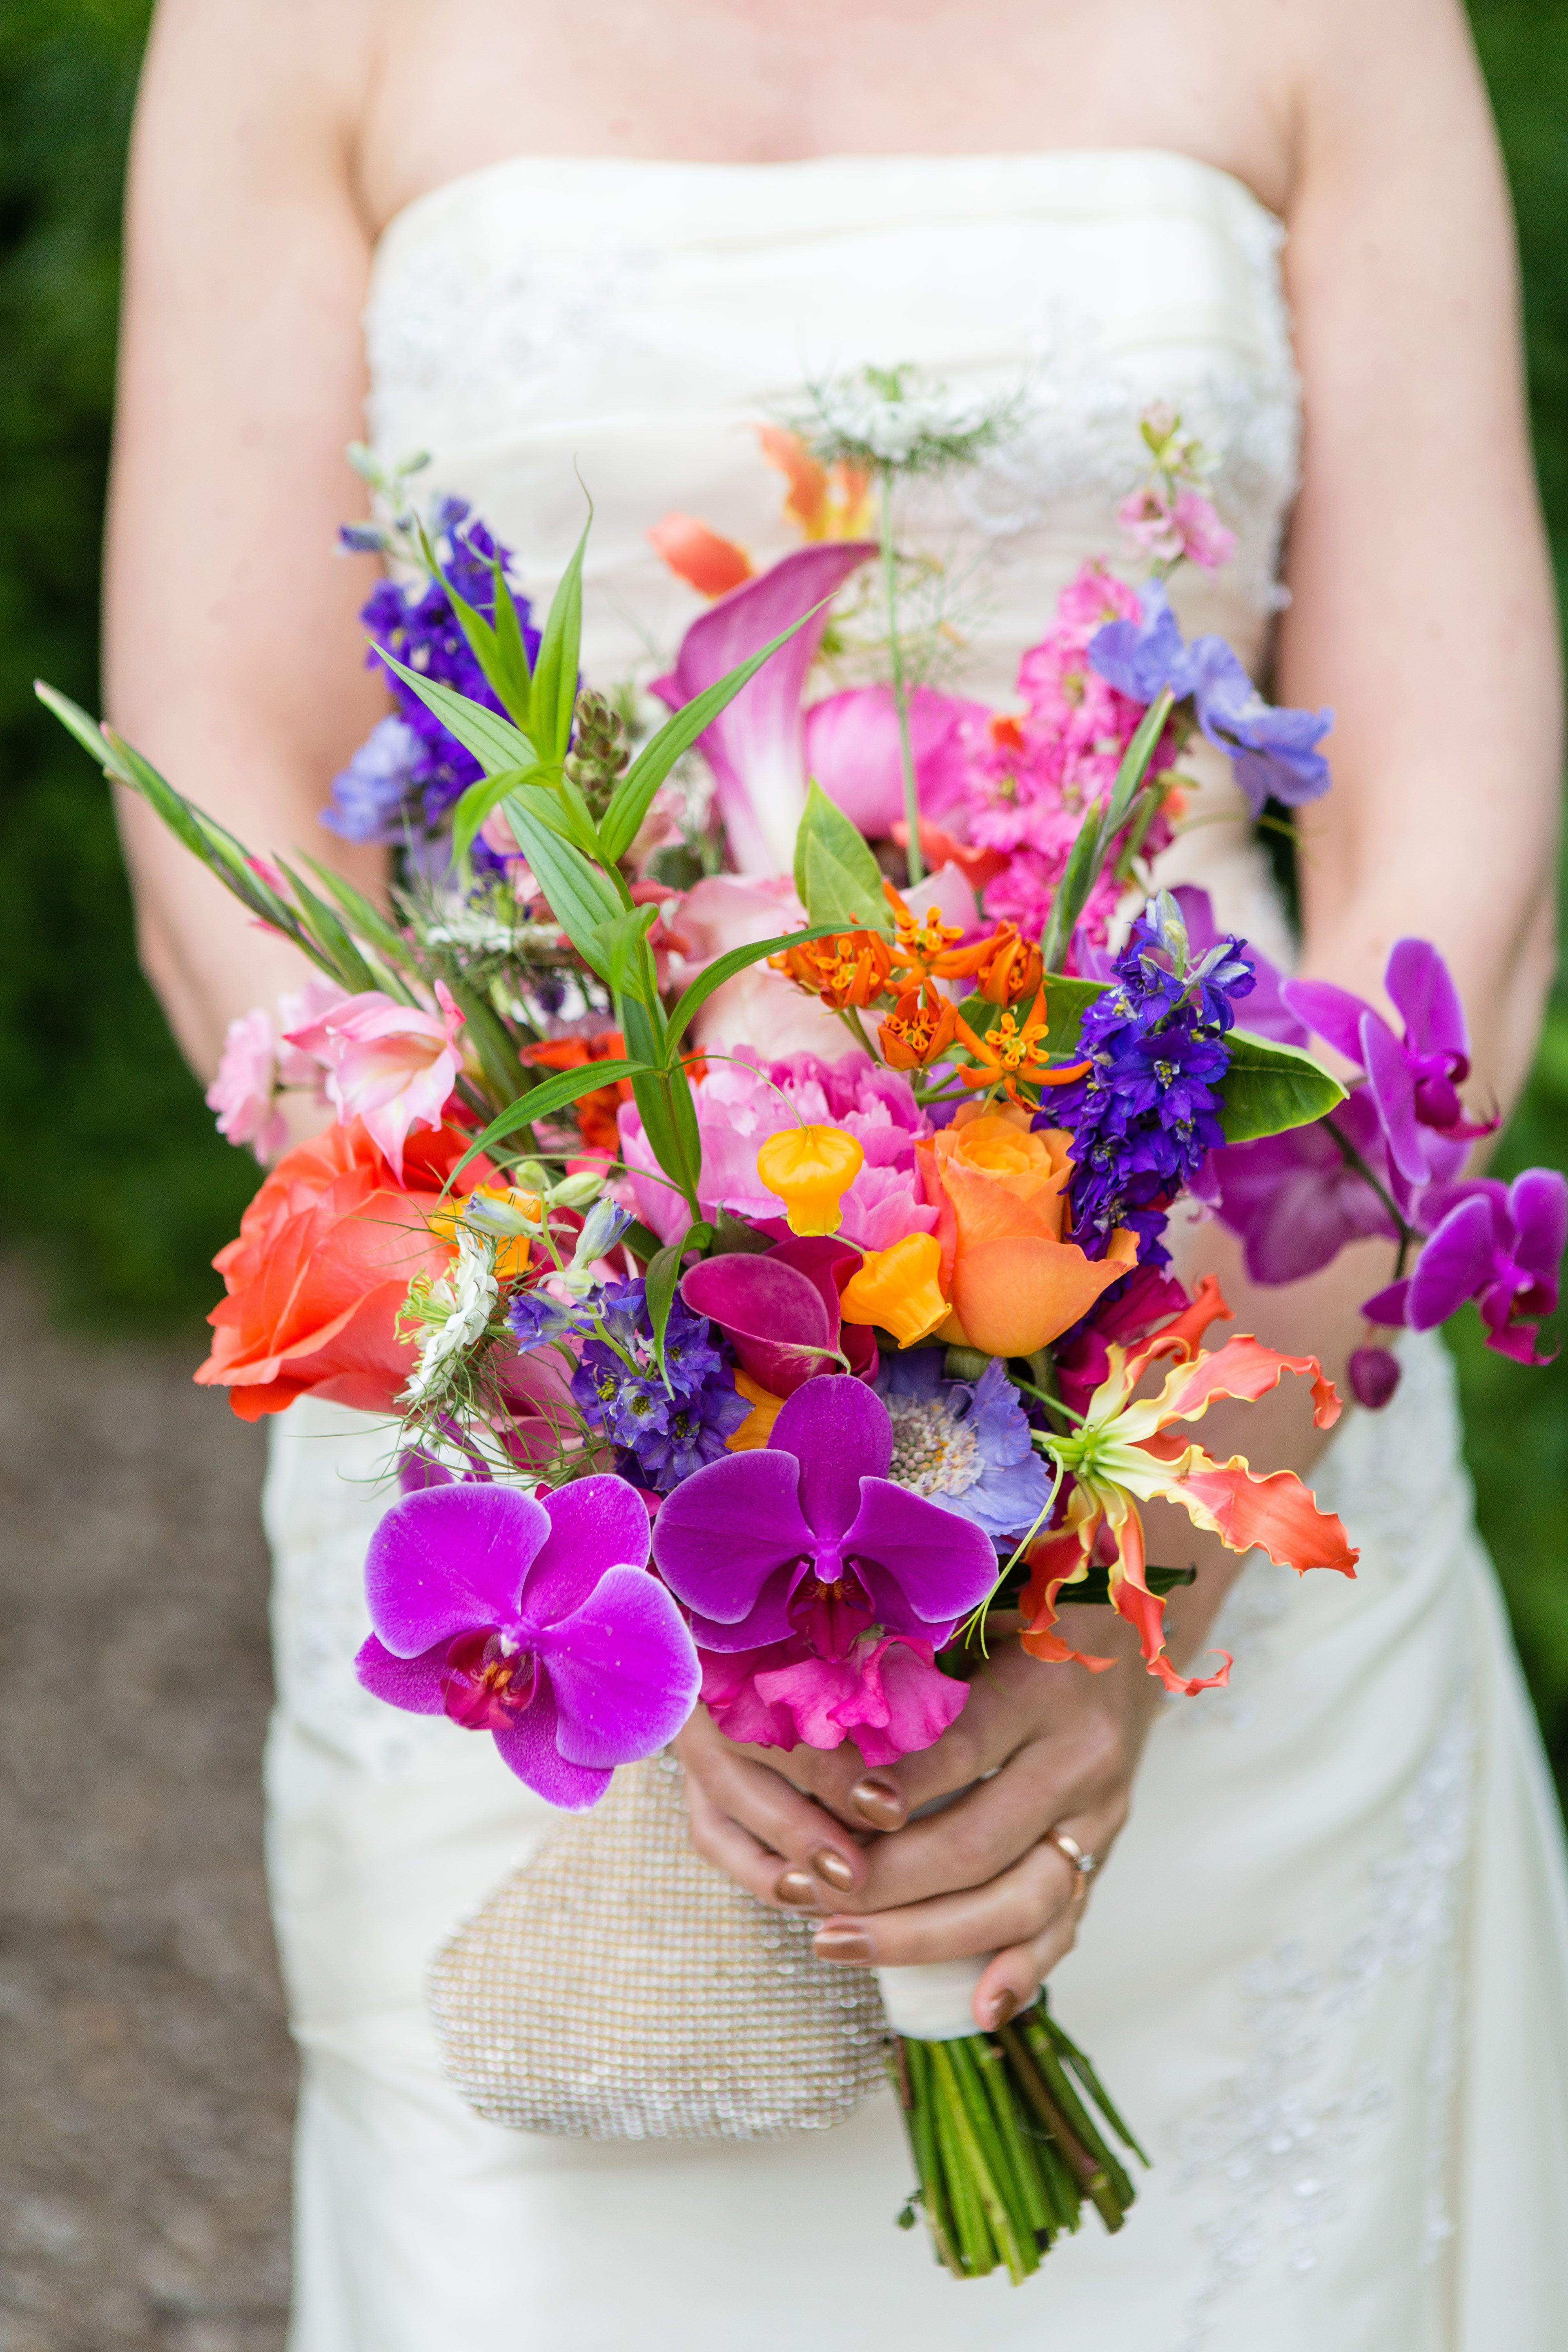 Multicolour And Vibrant Wedding Bouquet With Flowers